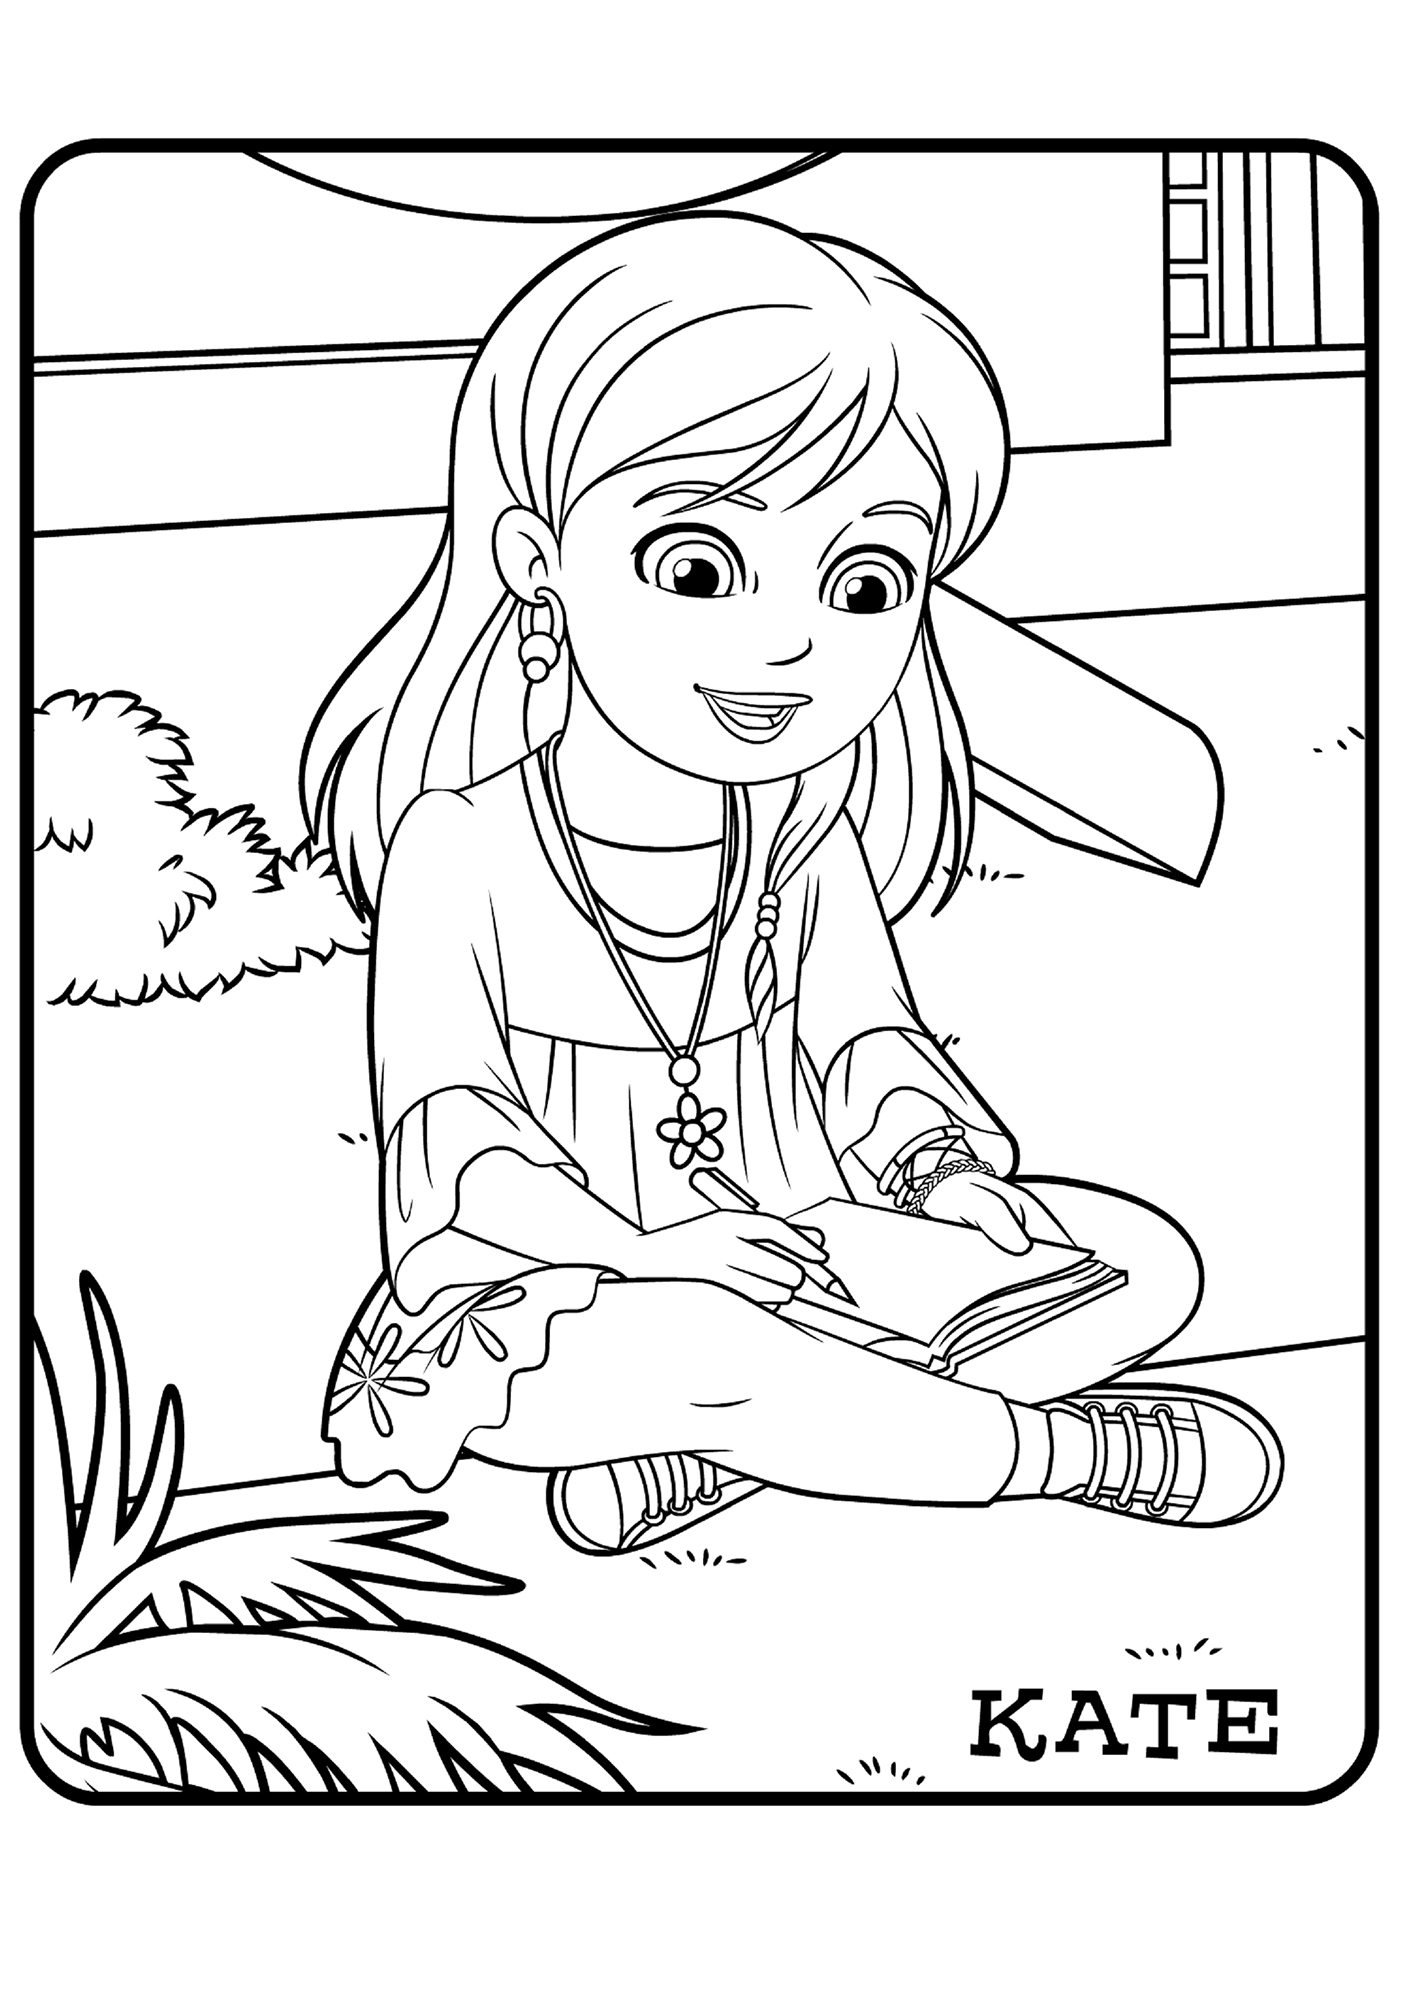 coloring pages dora and friends dora and friends coloring pages to download and print for free dora pages coloring and friends